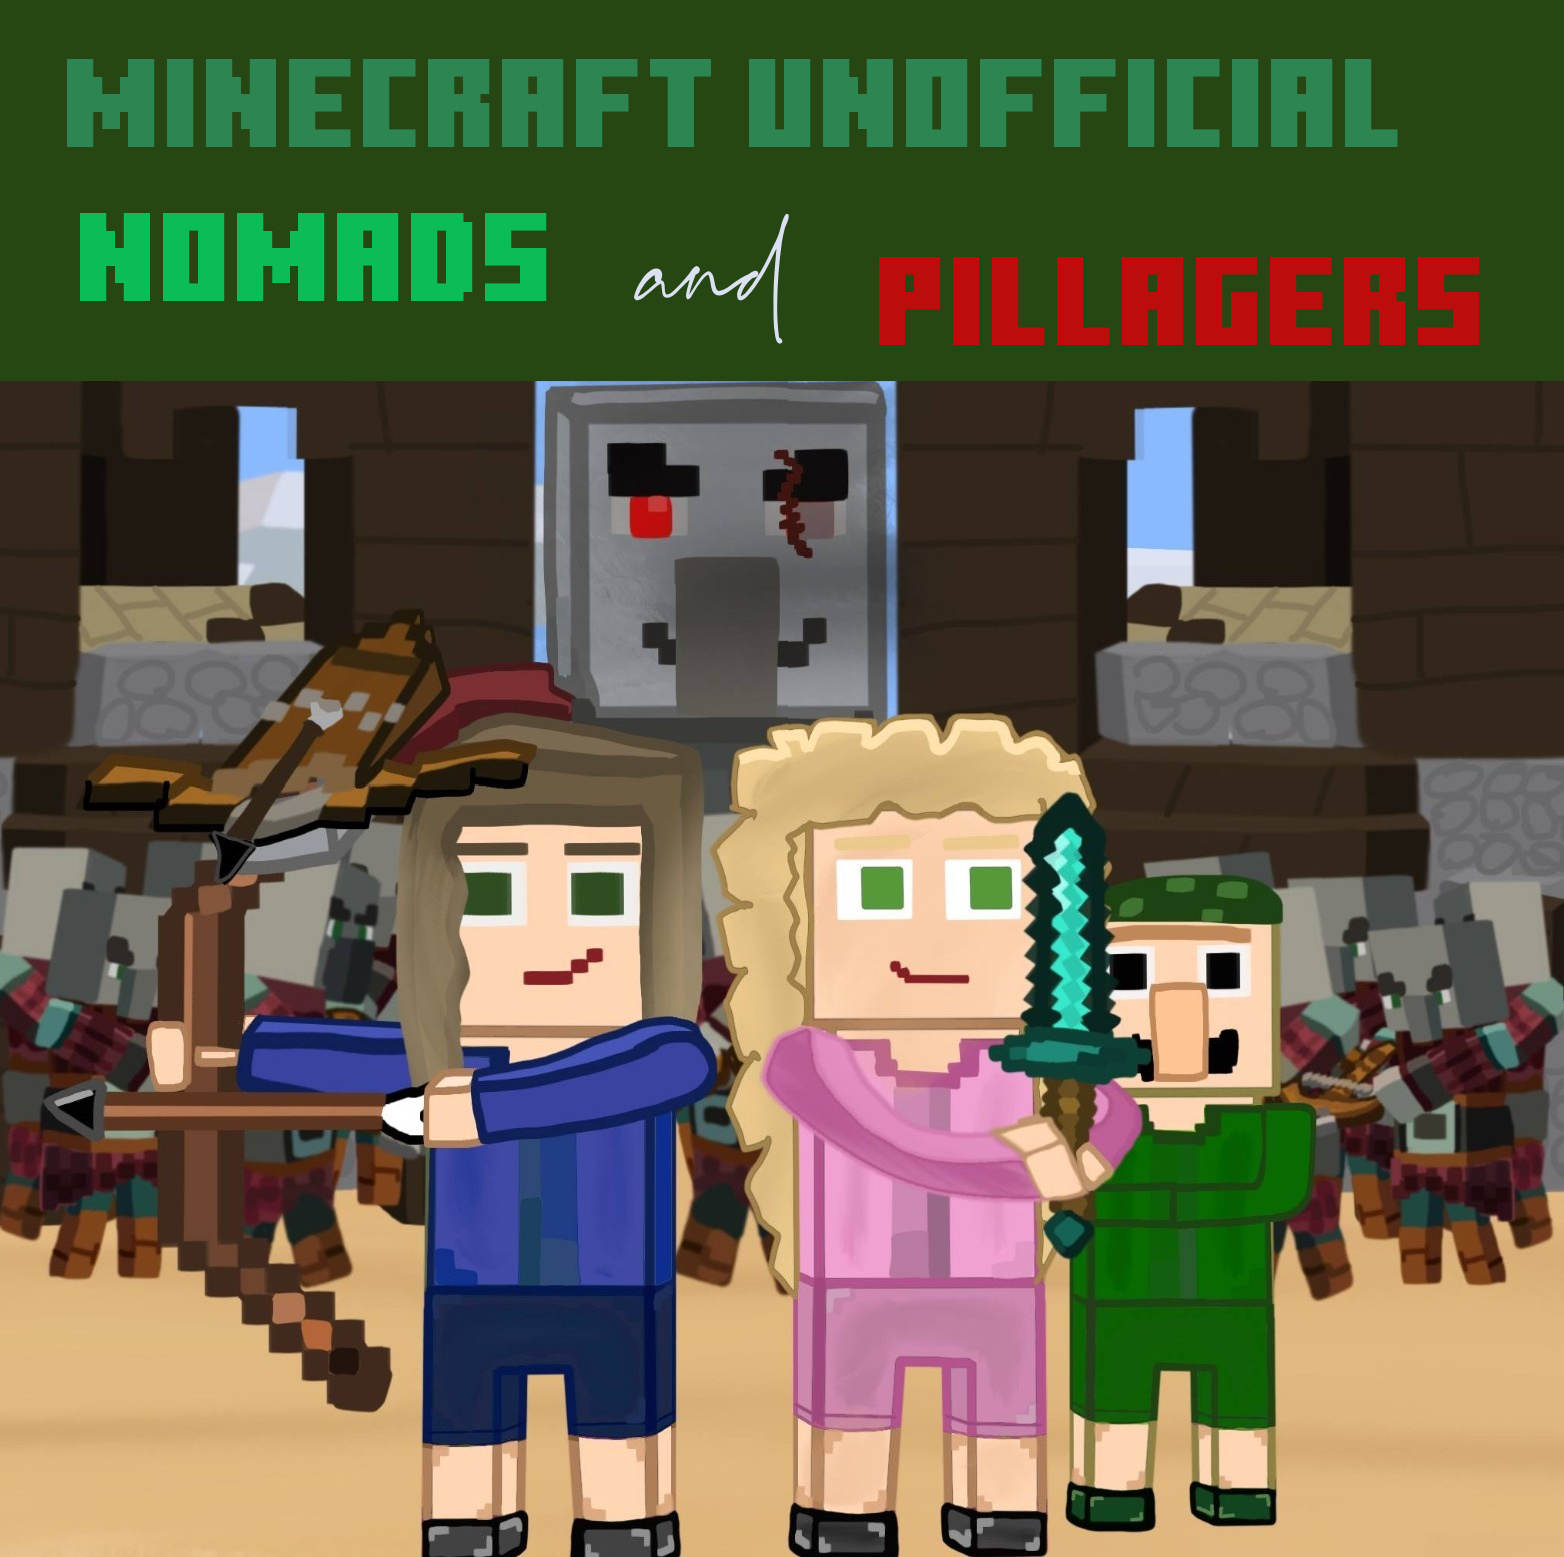 Minecraft Unofficial Nomads and Pillagers